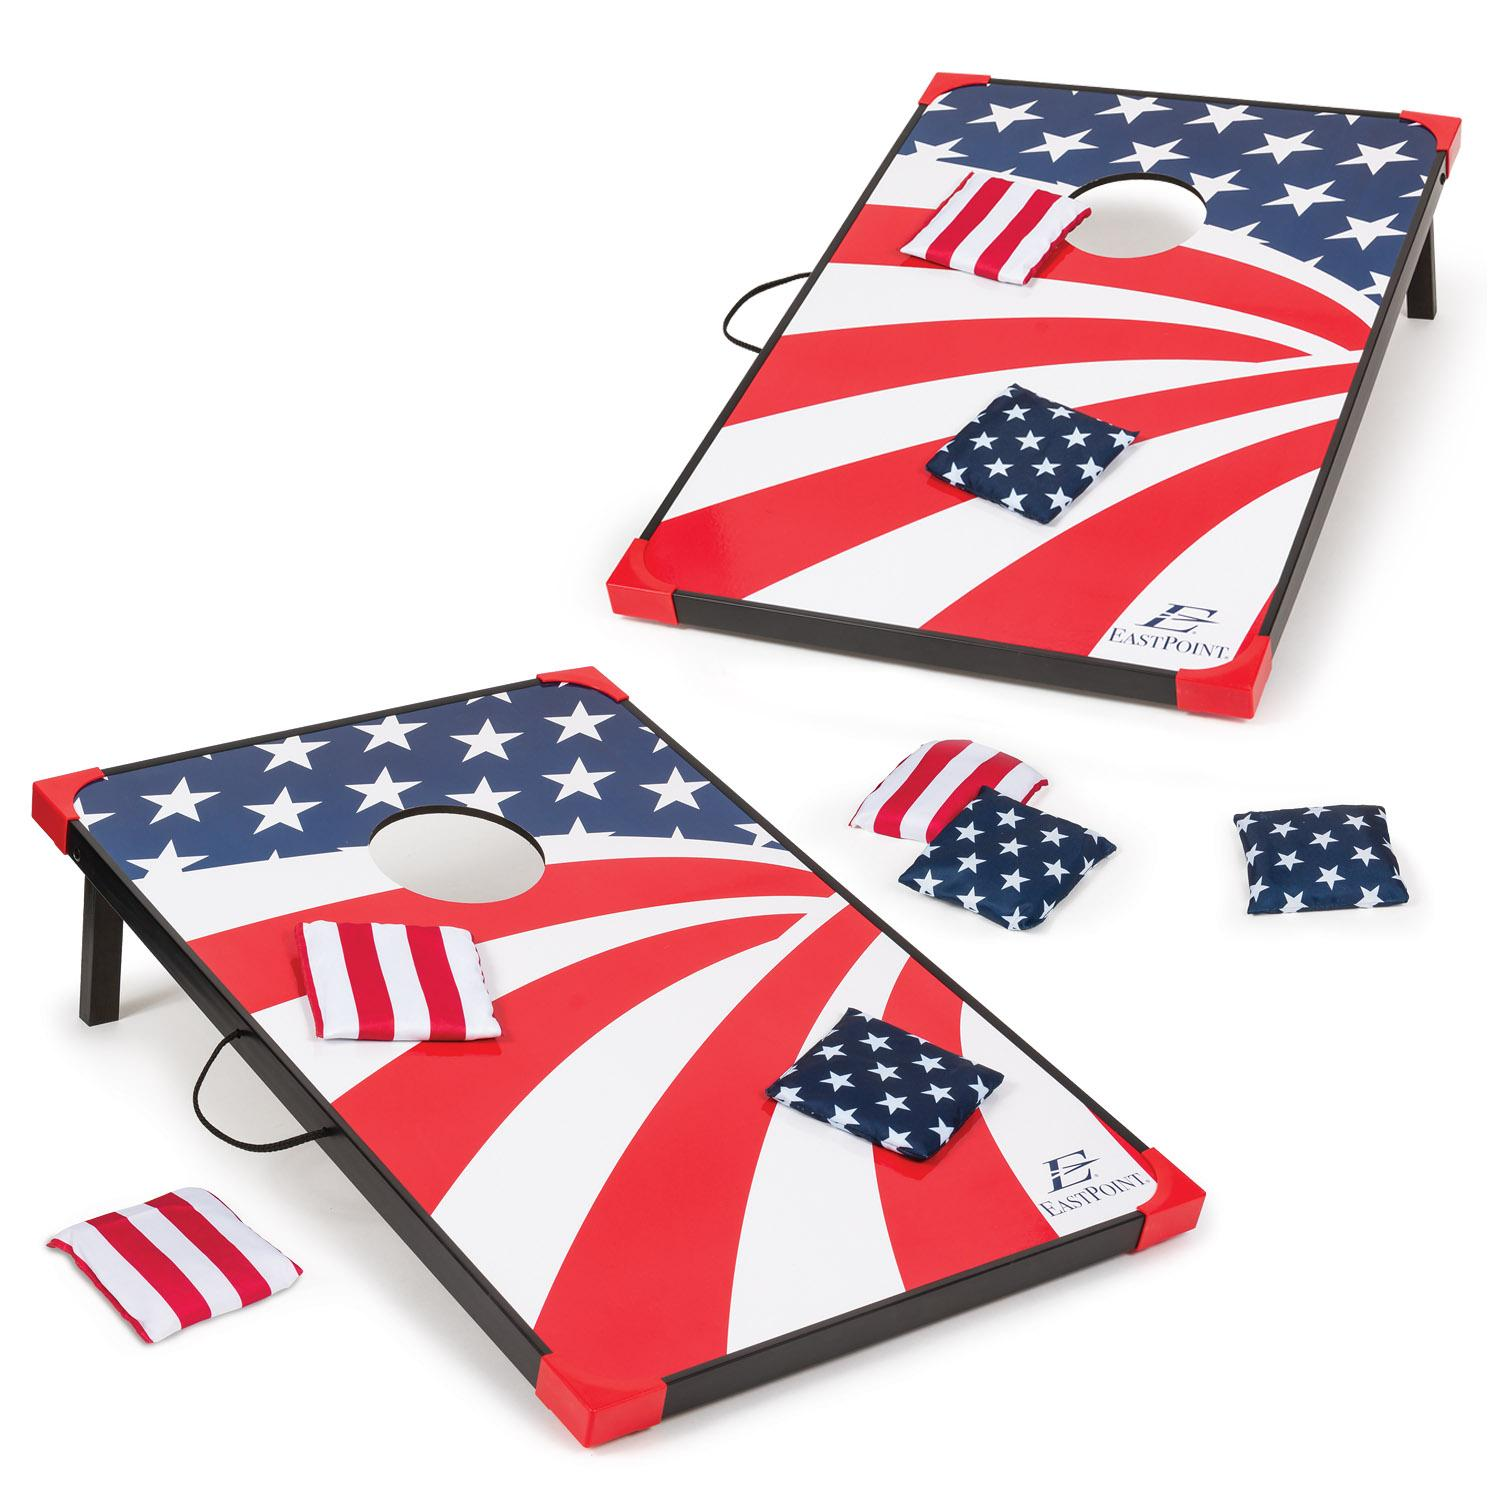 Amazon.com : EastPoint Sports Stars and Stripes Bean Bag Toss Set